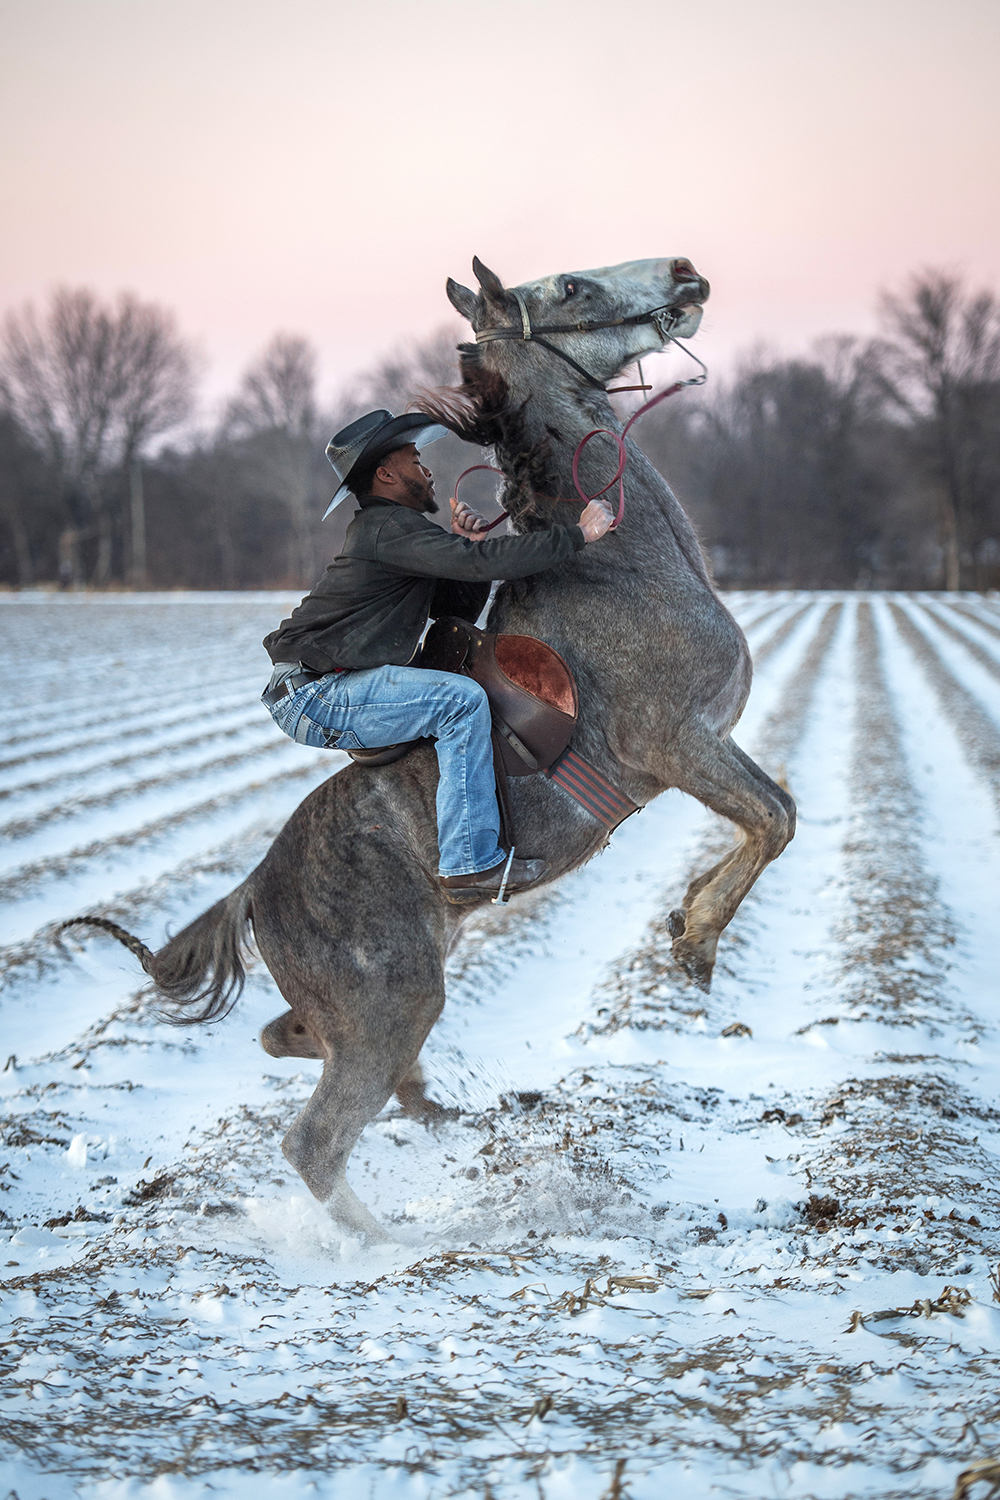 A young cowboy named Gee rises on his horse after a rare snowfall in Cleveland, Mississippi. Photo by Rory Doyle.